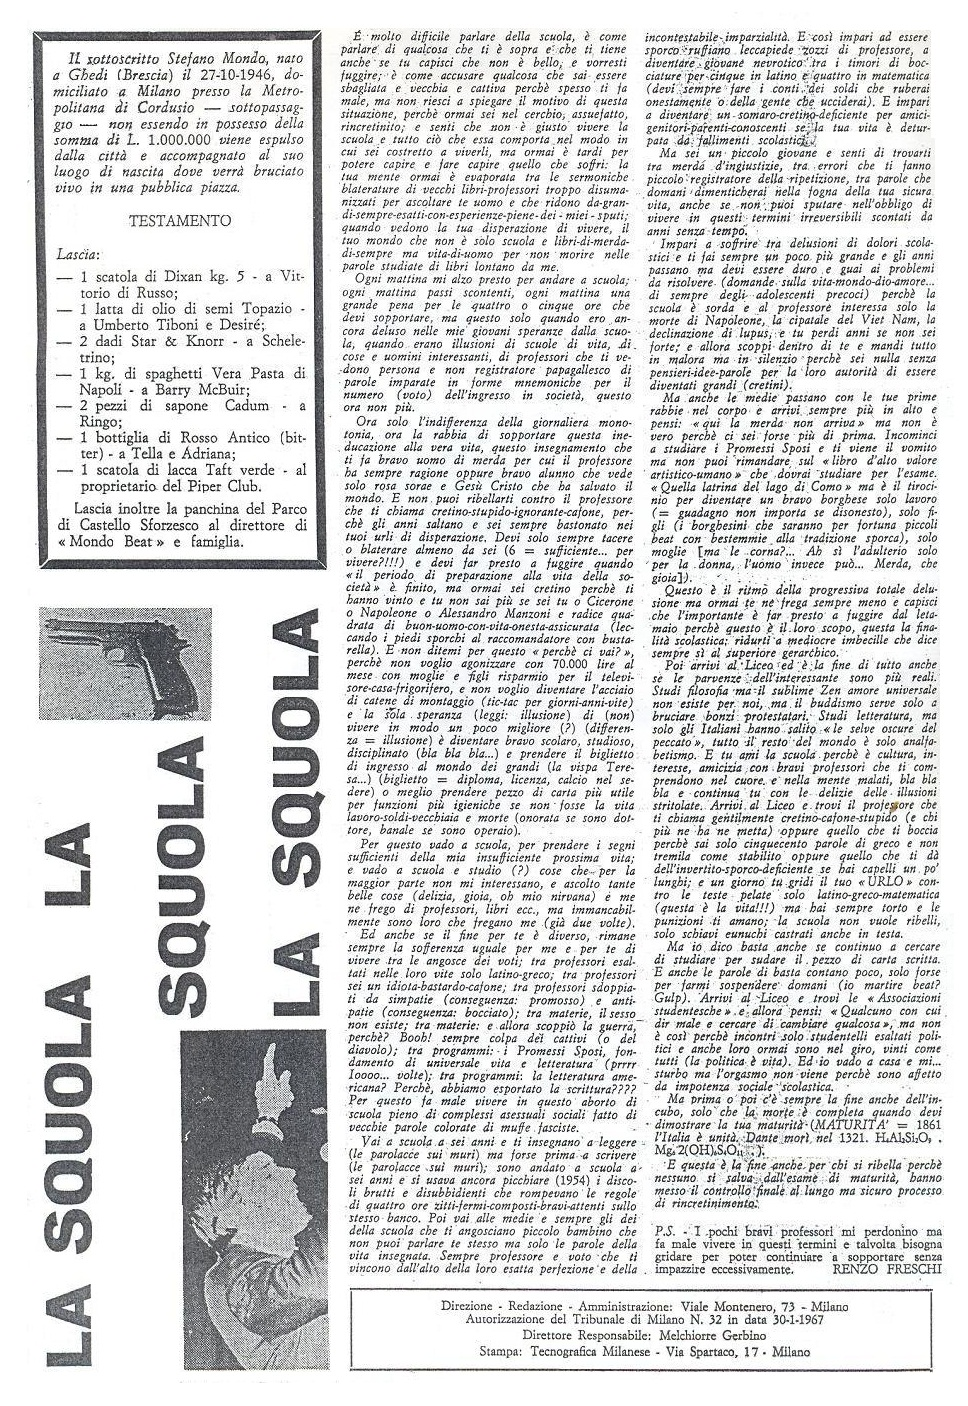 'LA SQUOLA, by Renzo Freschi, was an attack against the Italian school system